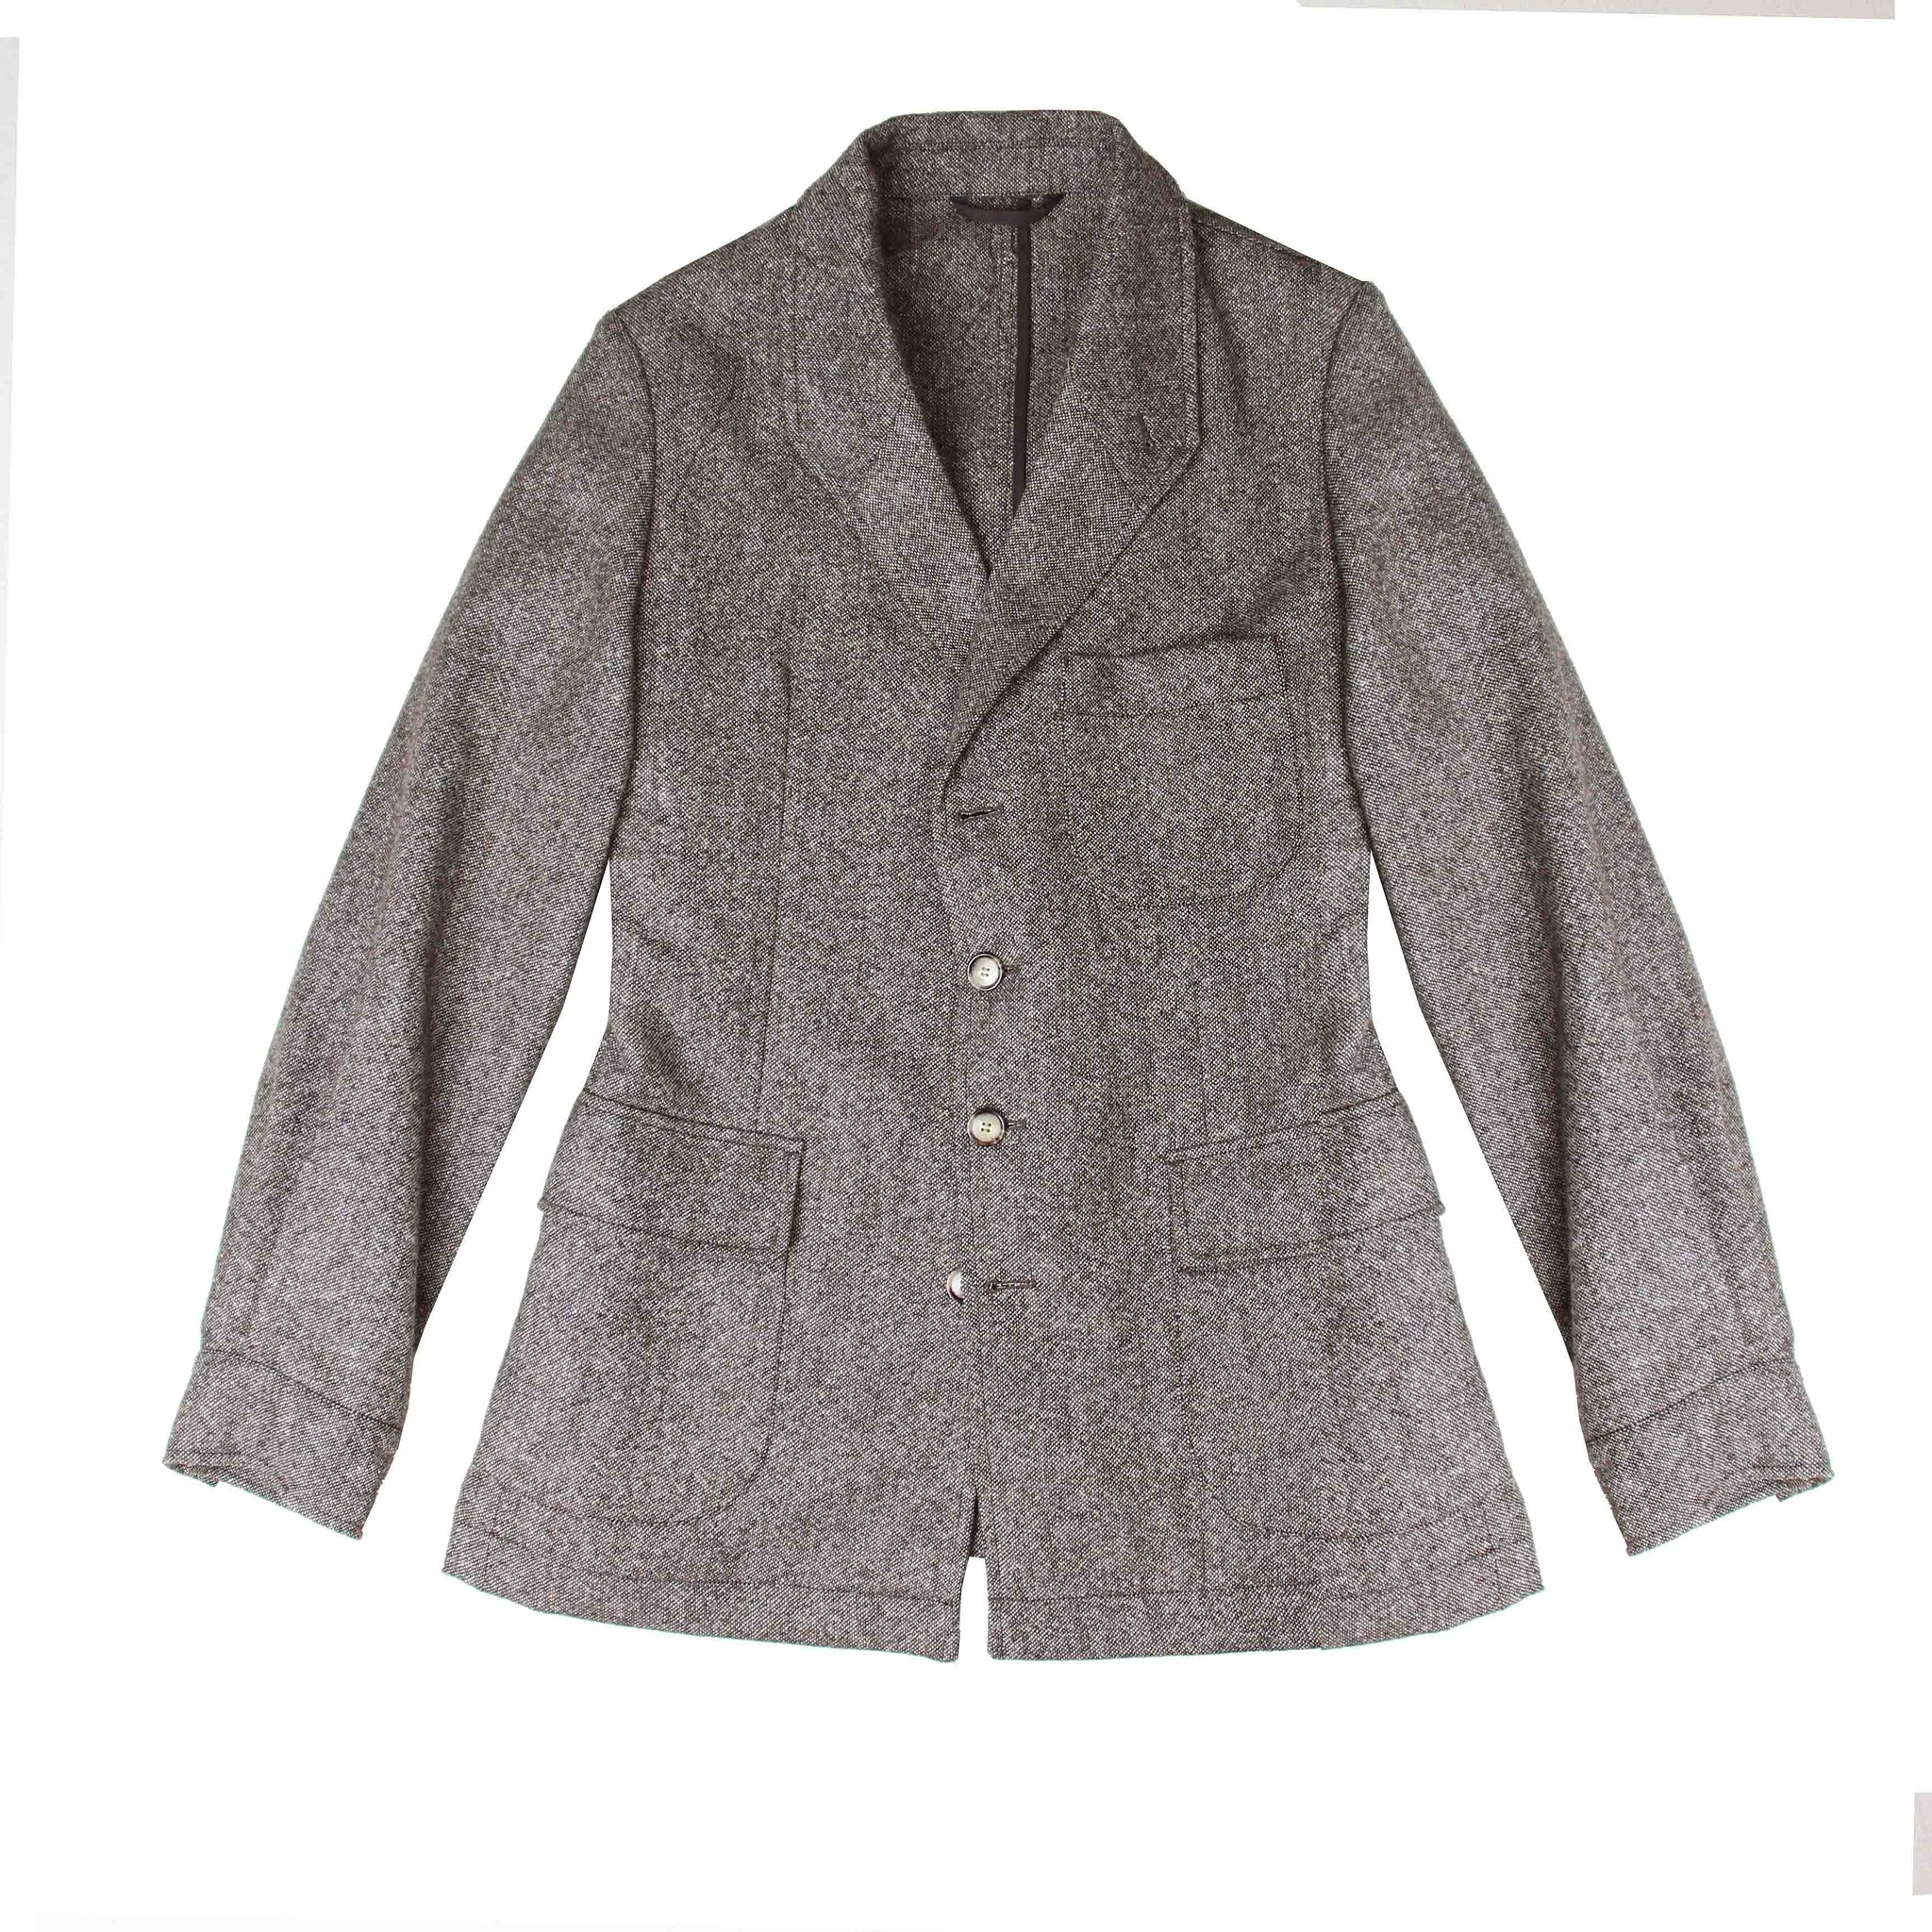 Veste arTeba VS tweed caviar beige